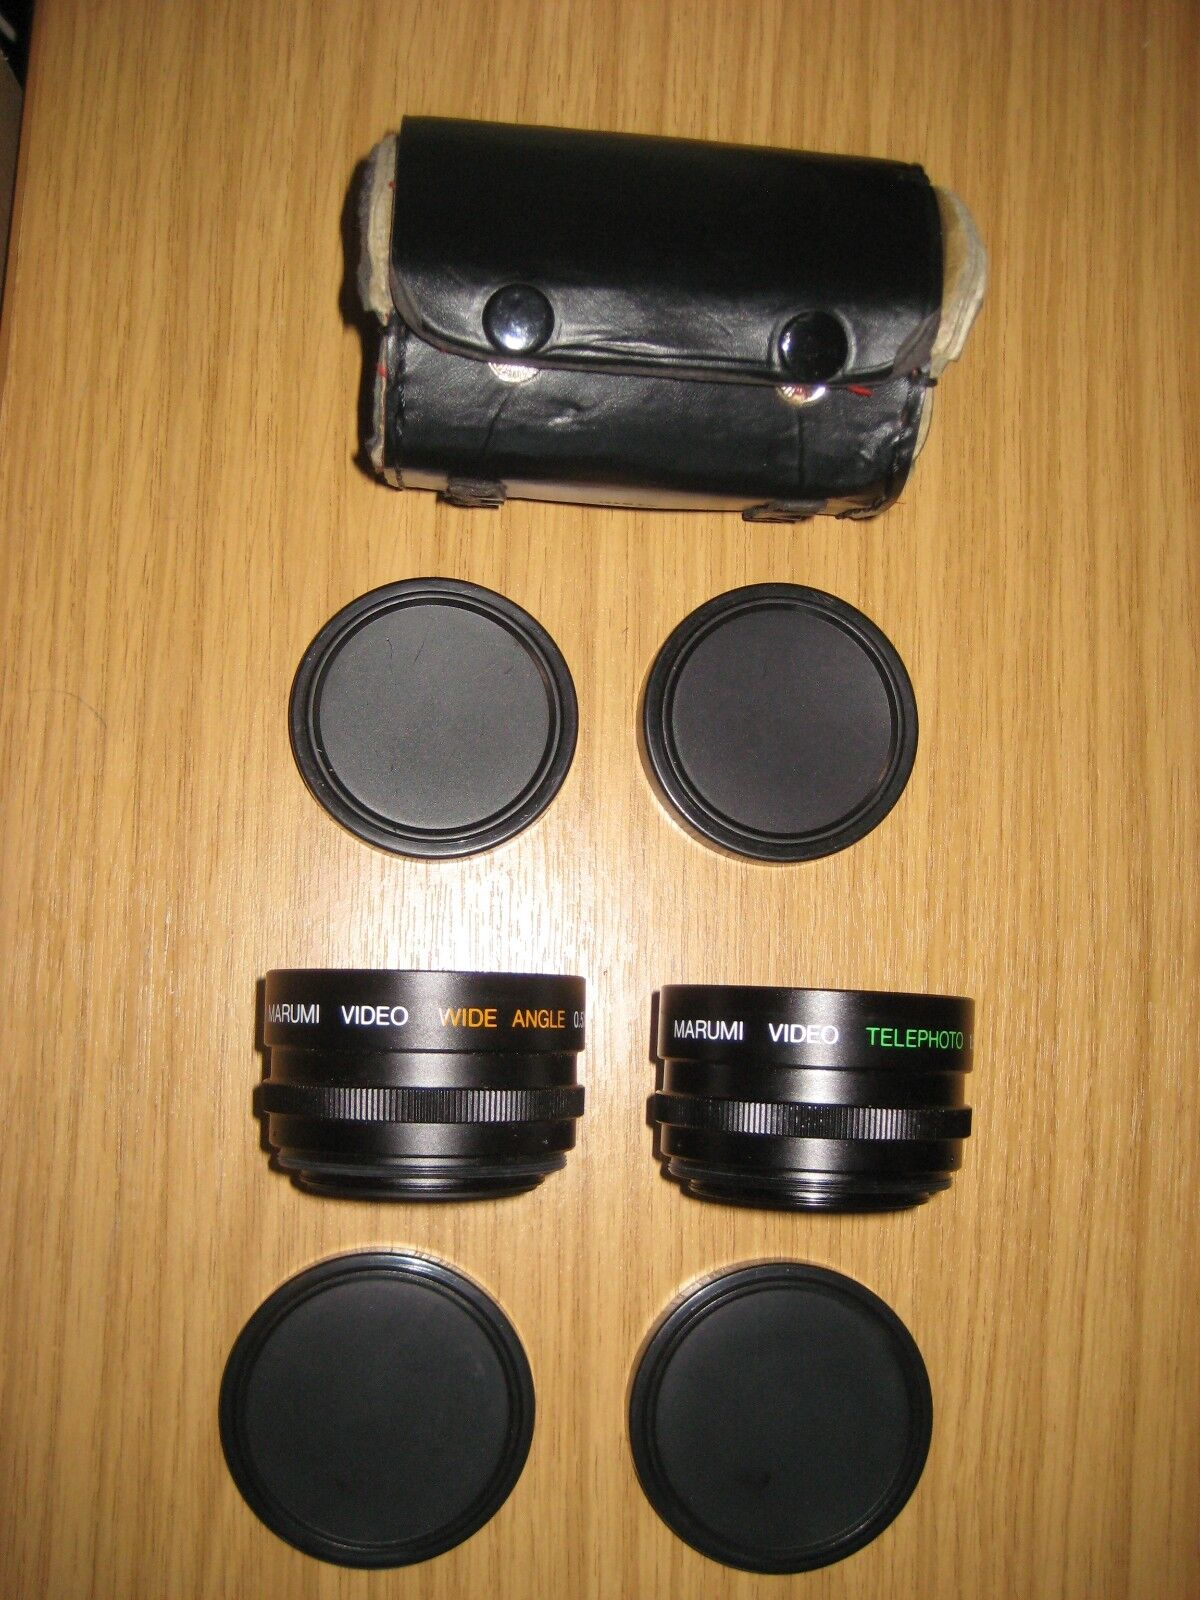 PAIR OF MARUMI TELEPHOTO and WIDE ANGLE LENSES and CASE